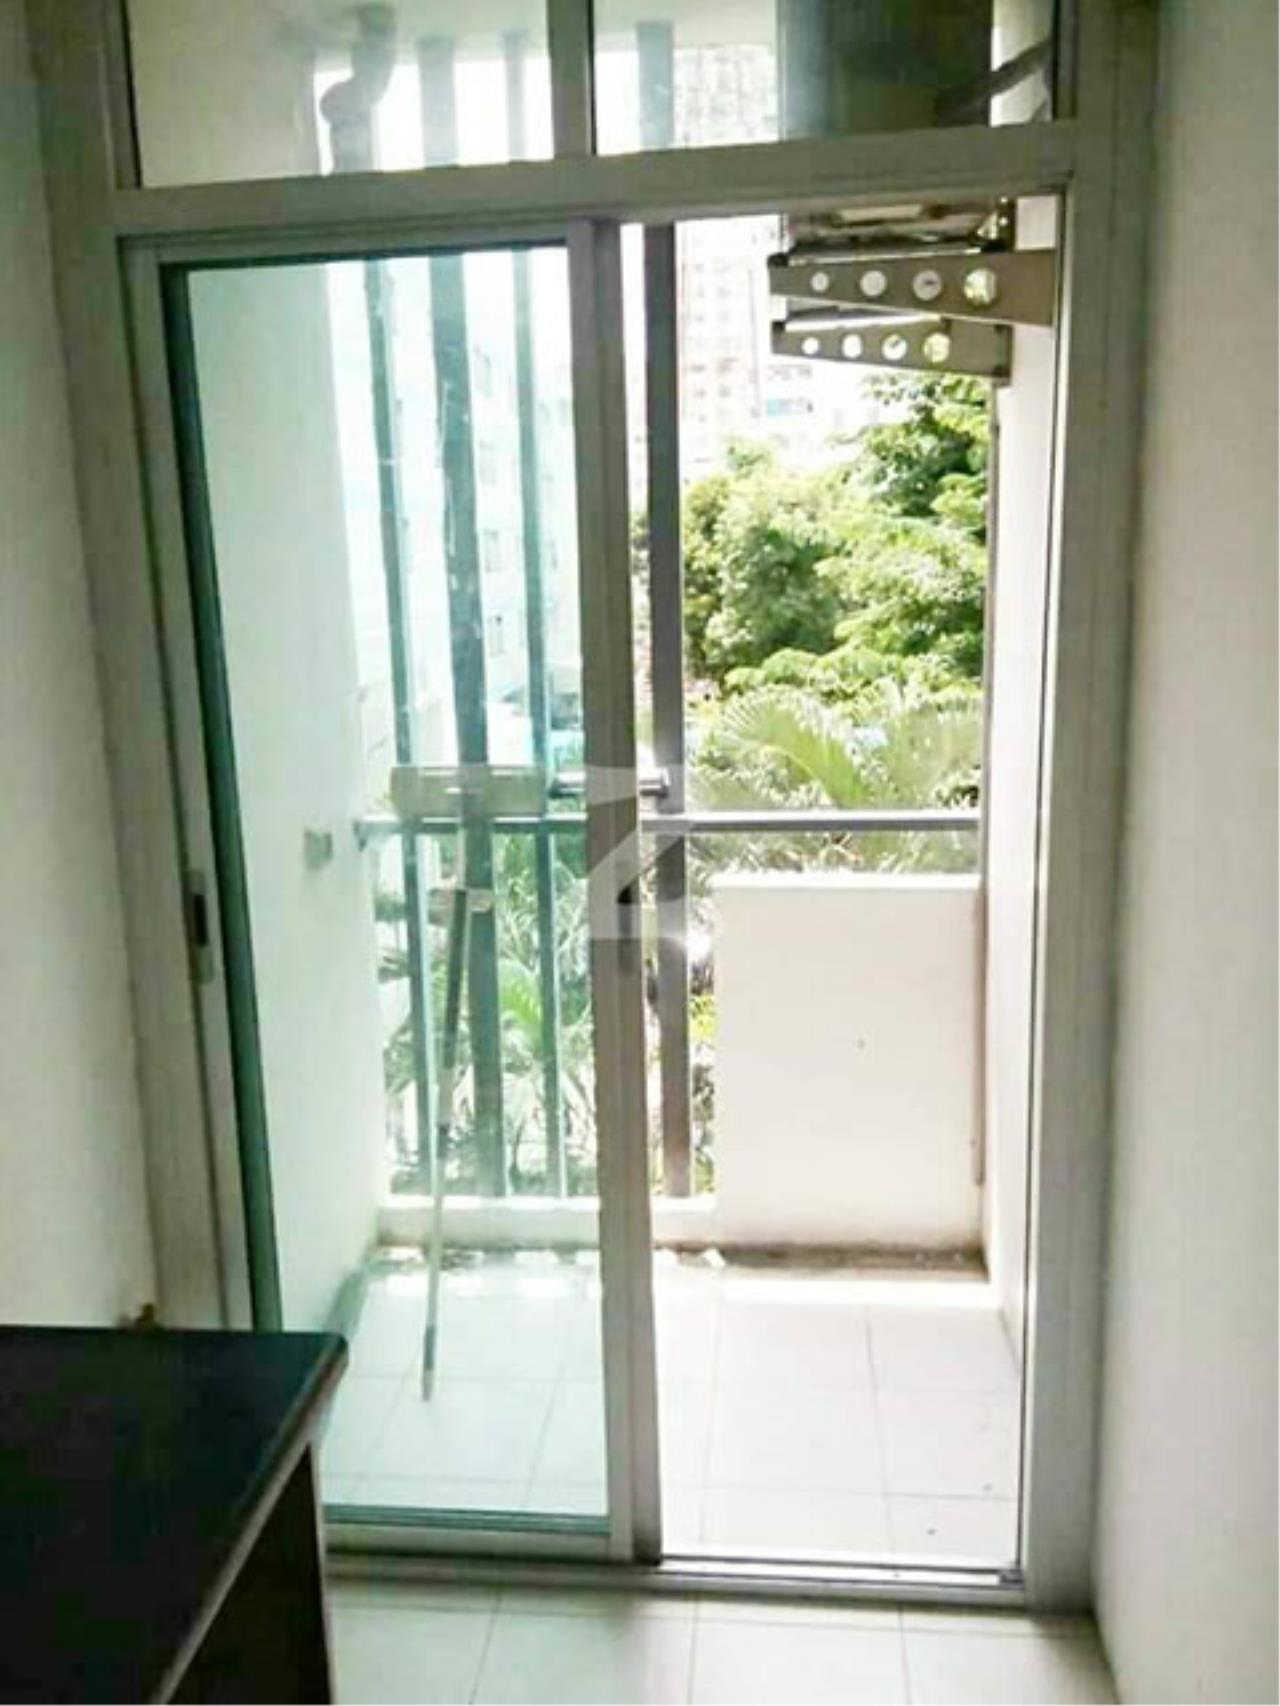 Agent - Sarunya jantanakorn Agency's Condo for Sale 624 Condolette Ladprao fl.3rd 30 sqm near The Mall Bangkapi 4